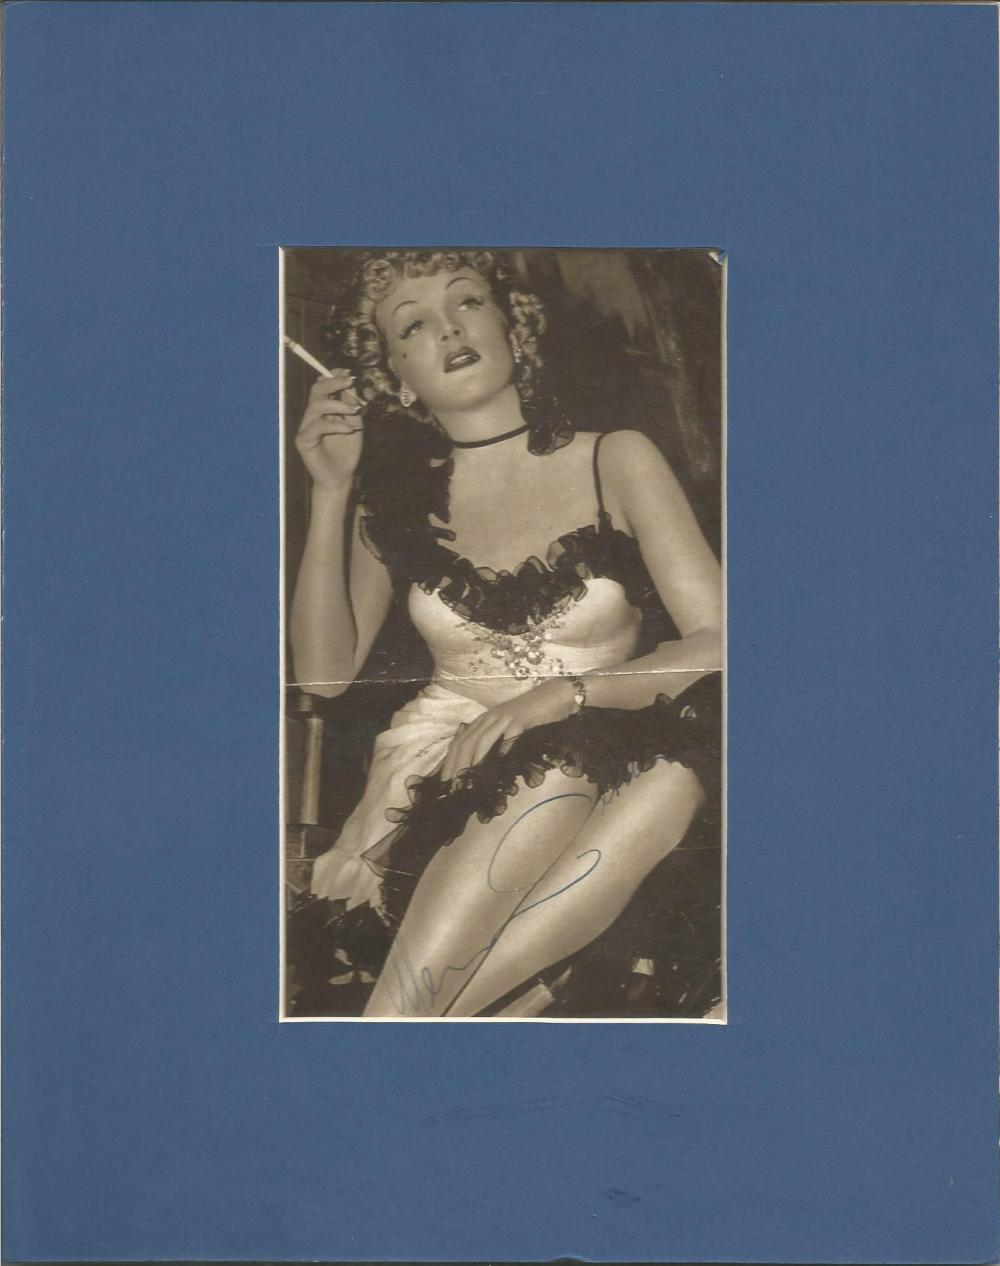 Marlene Dietrich signed and mounted b/w photo, to 10 x 8 overall size. Comes with biography